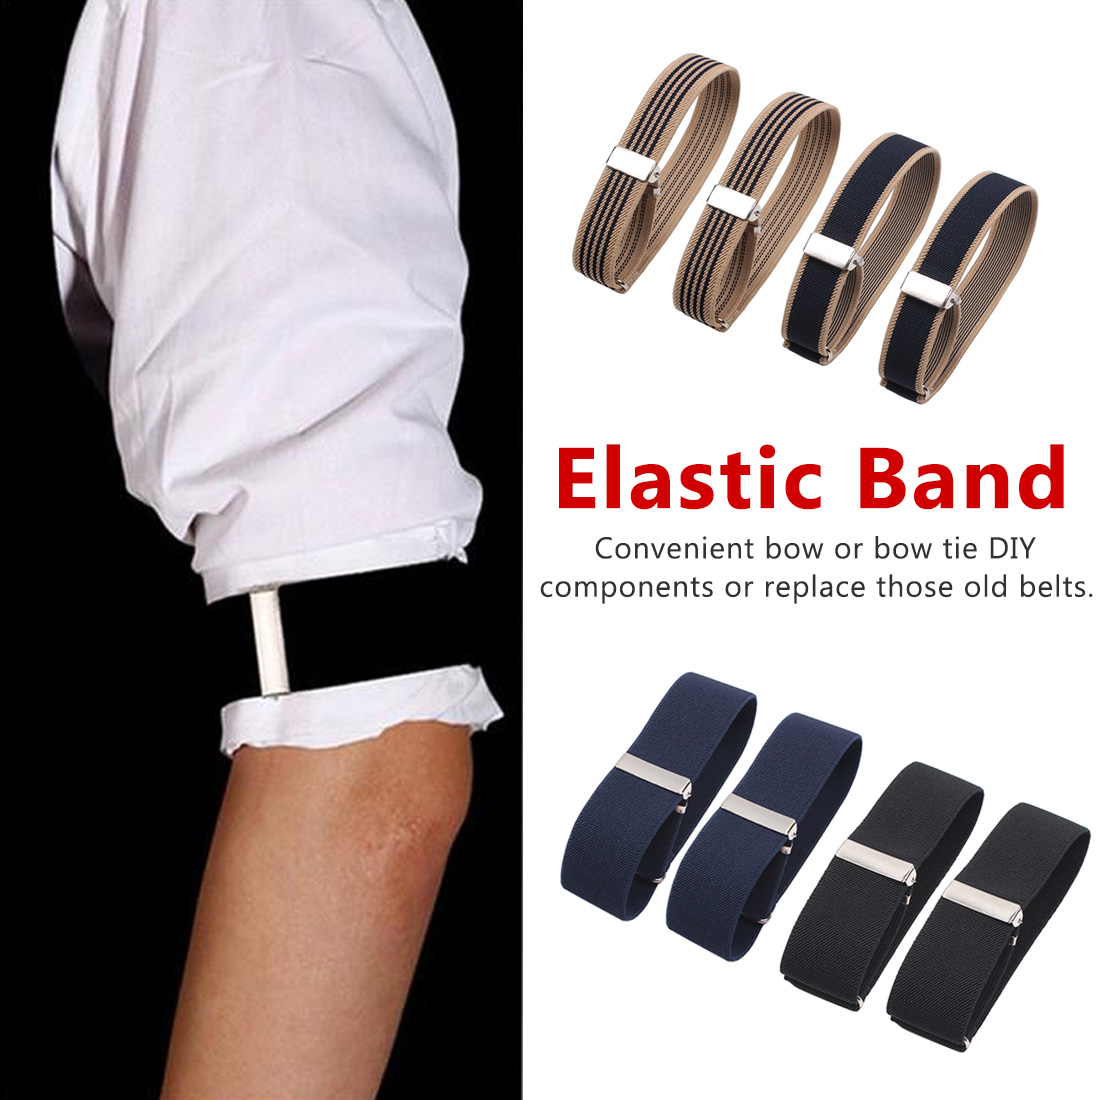 French Gentleman Shirt Elastic Sleeves Cuffs Armbands Man Shirts Bartenders Bracelets Arms With Sleeves Decoration